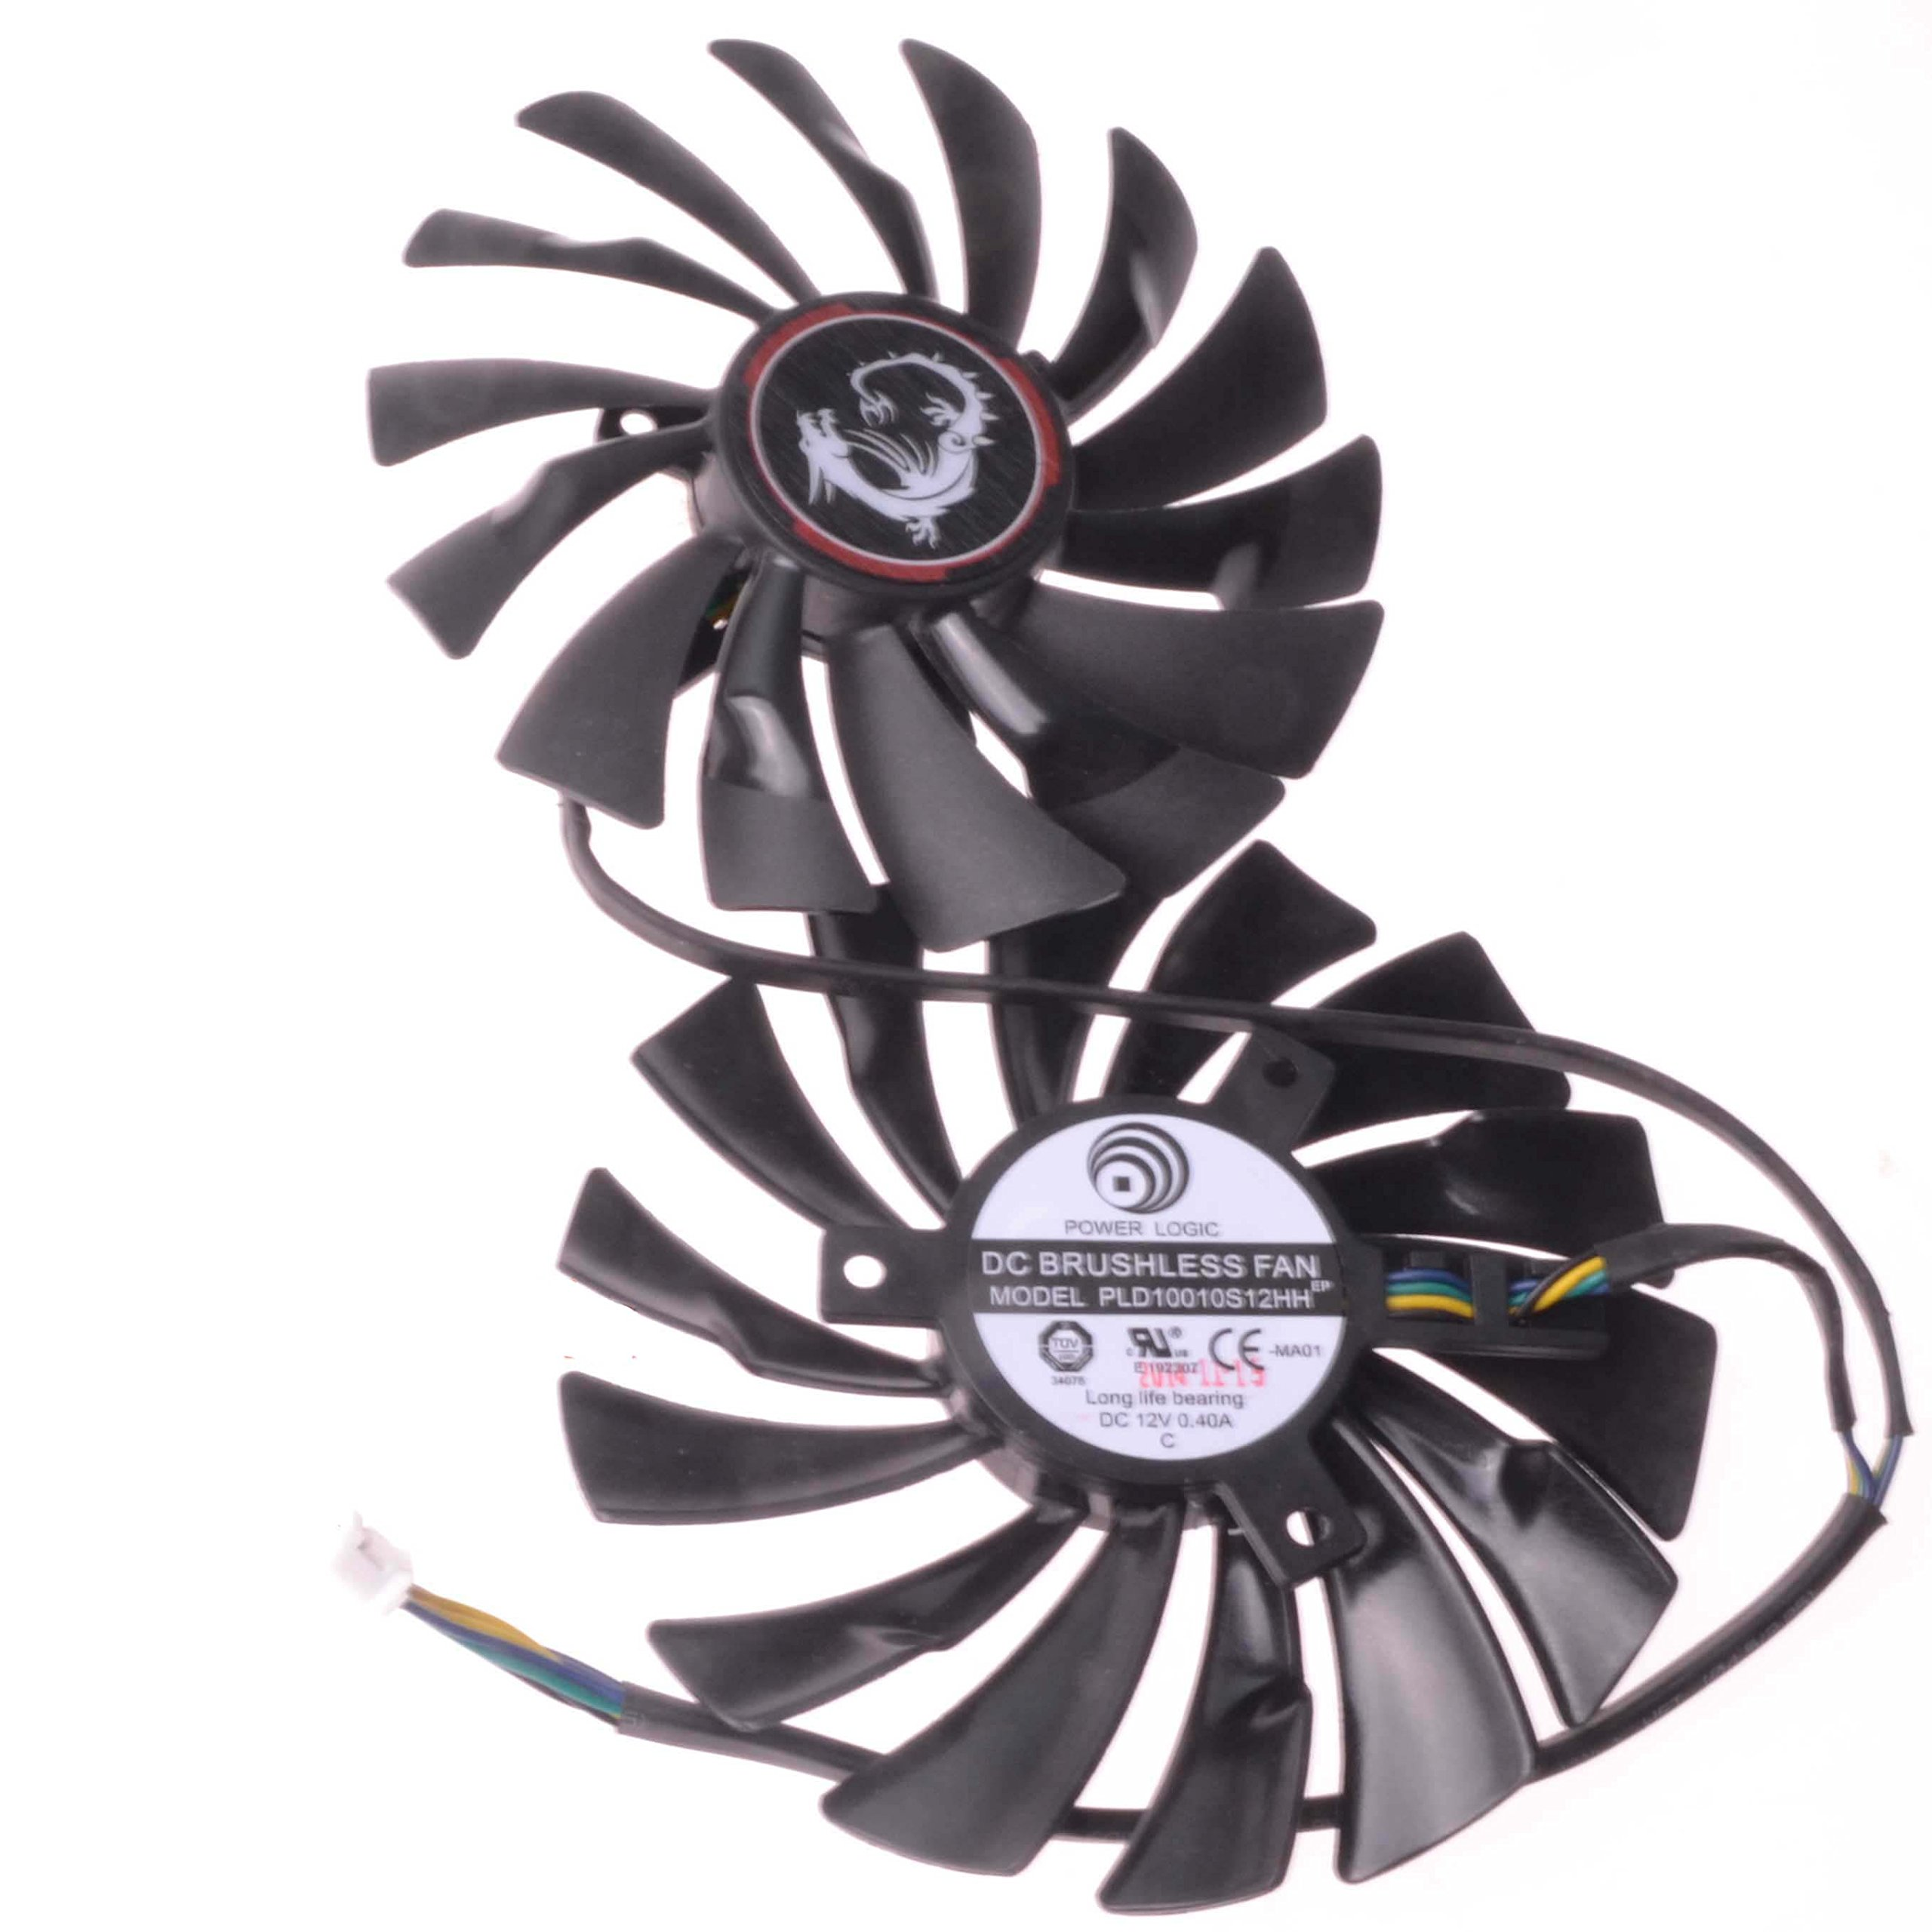 Replacement Video Card Cooling Fan For GTX970 GTX980 GTX980Ti Graphics Card Fan PLD10010S12HH 12V 0.4A 95mm 6 Wire 6 Pin